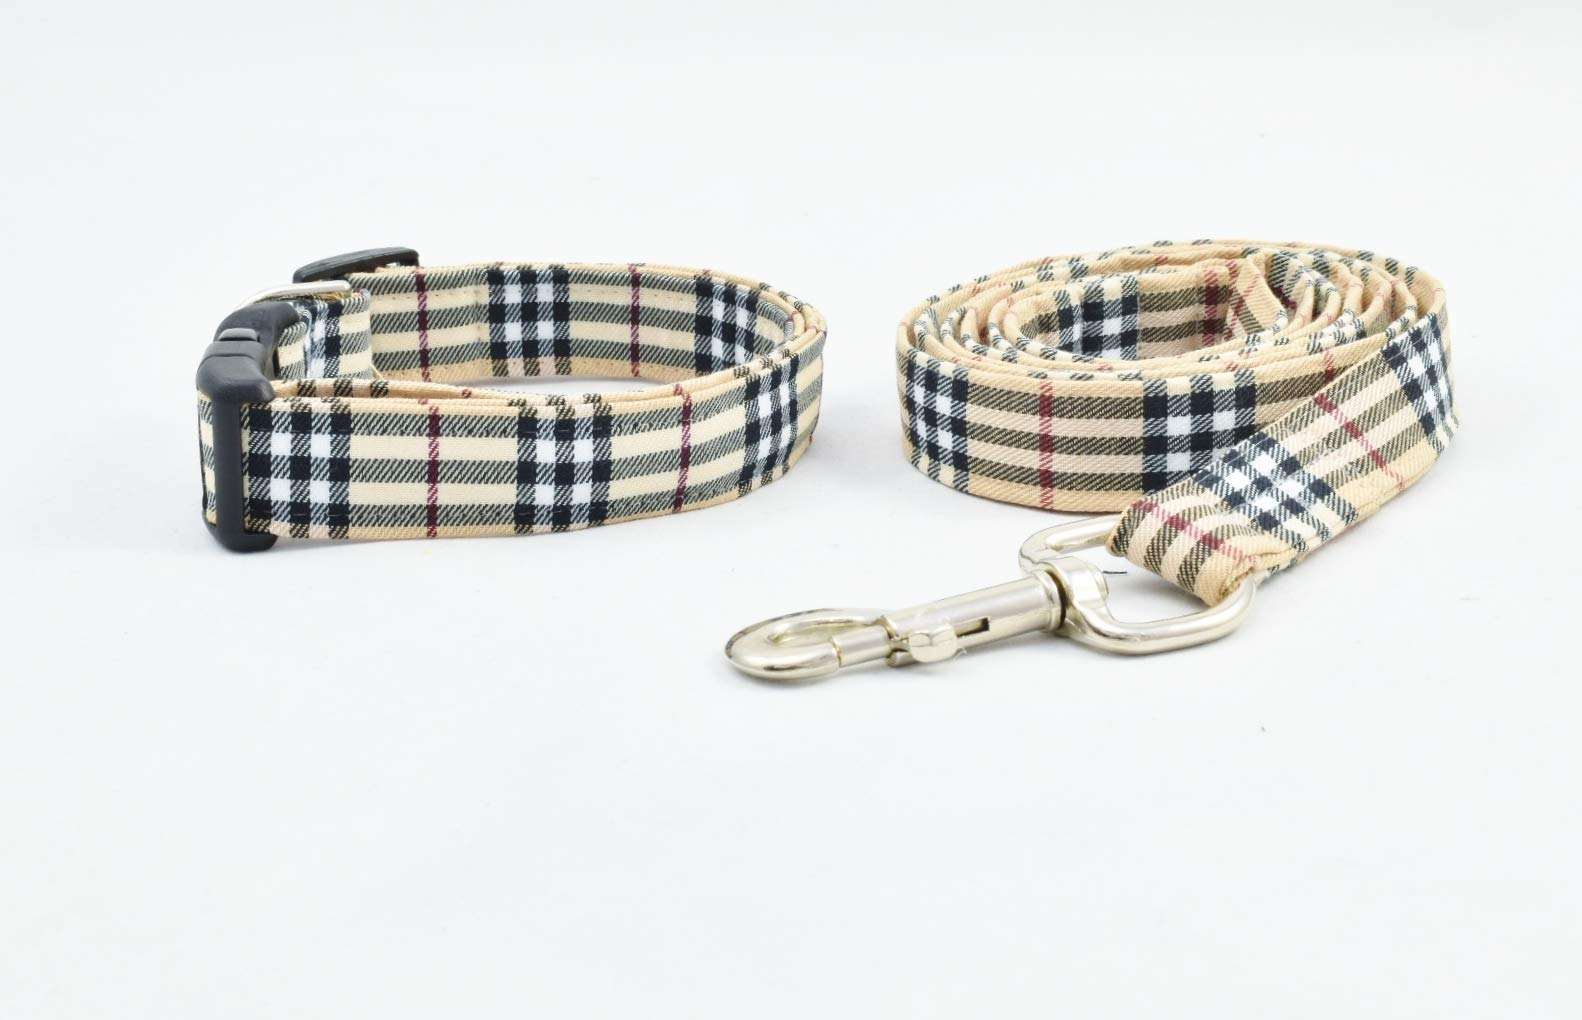 Stunning FURBERRY DOG COLLAR AND LEASH SET in Fashion Nova Check and Famous Designer Plaid